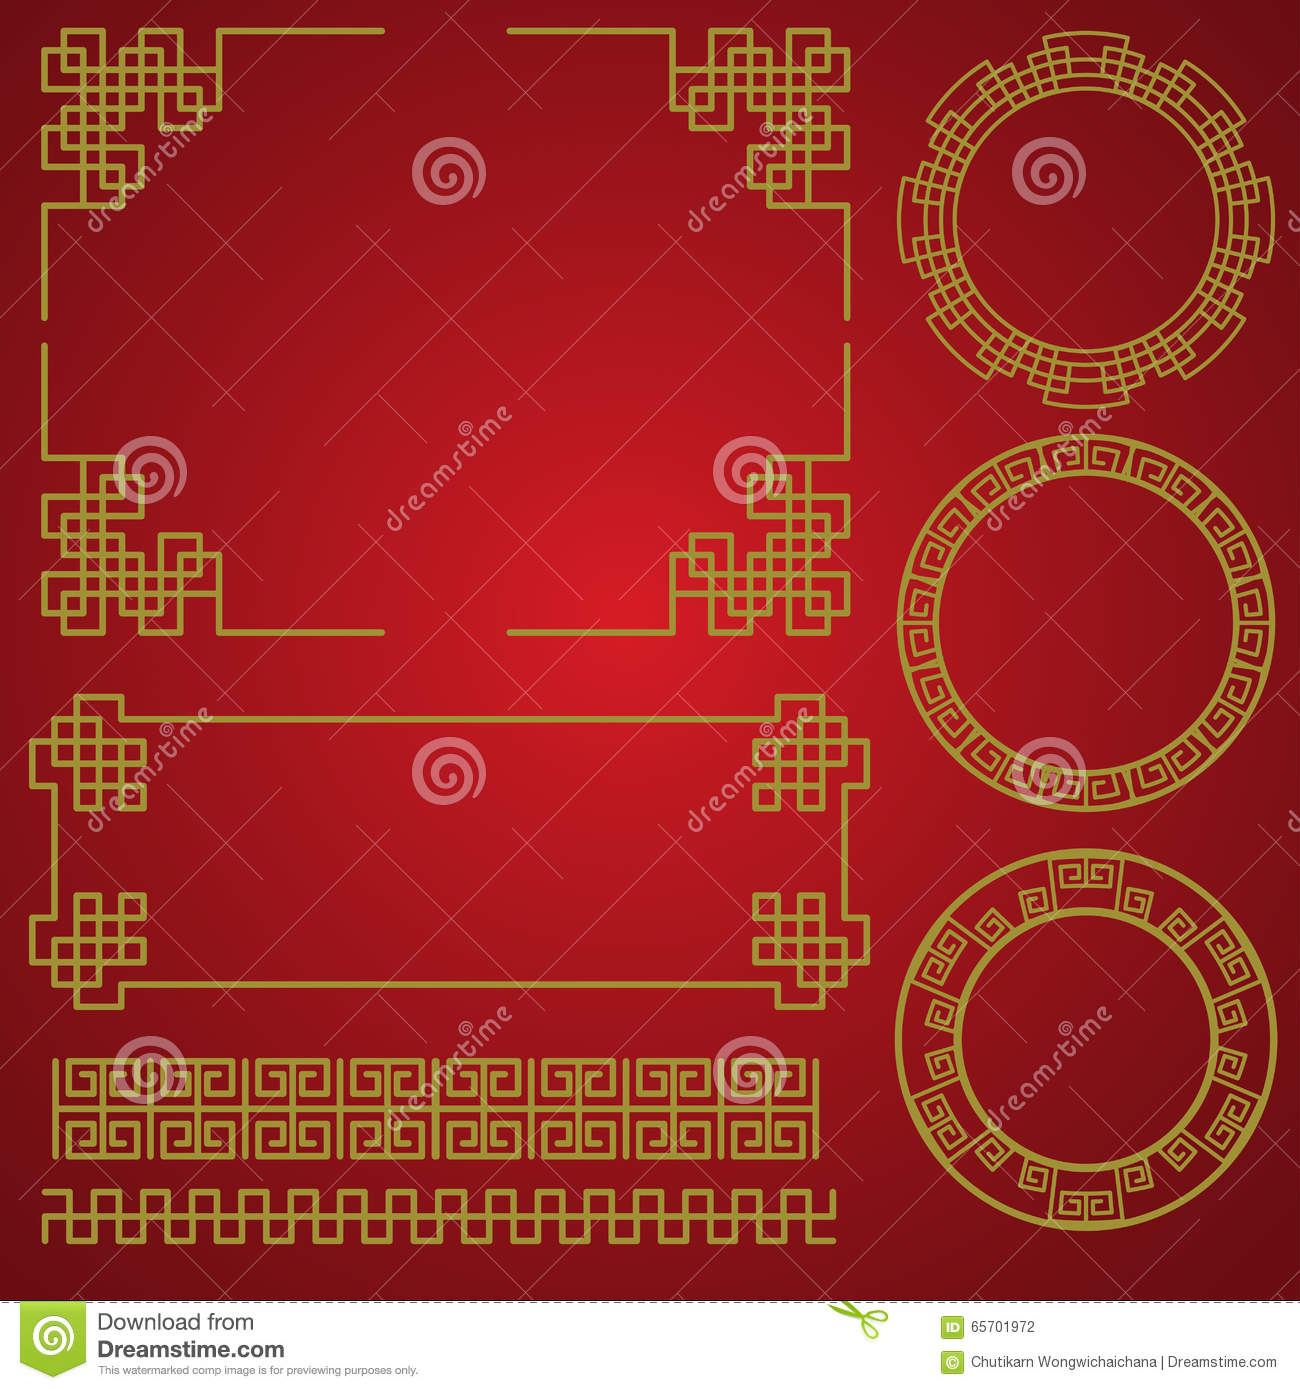 Chinese New Year Border  Vector Elements Stock Vector   Illustration     Download Chinese New Year Border  Vector Elements Stock Vector    Illustration of gold  culture